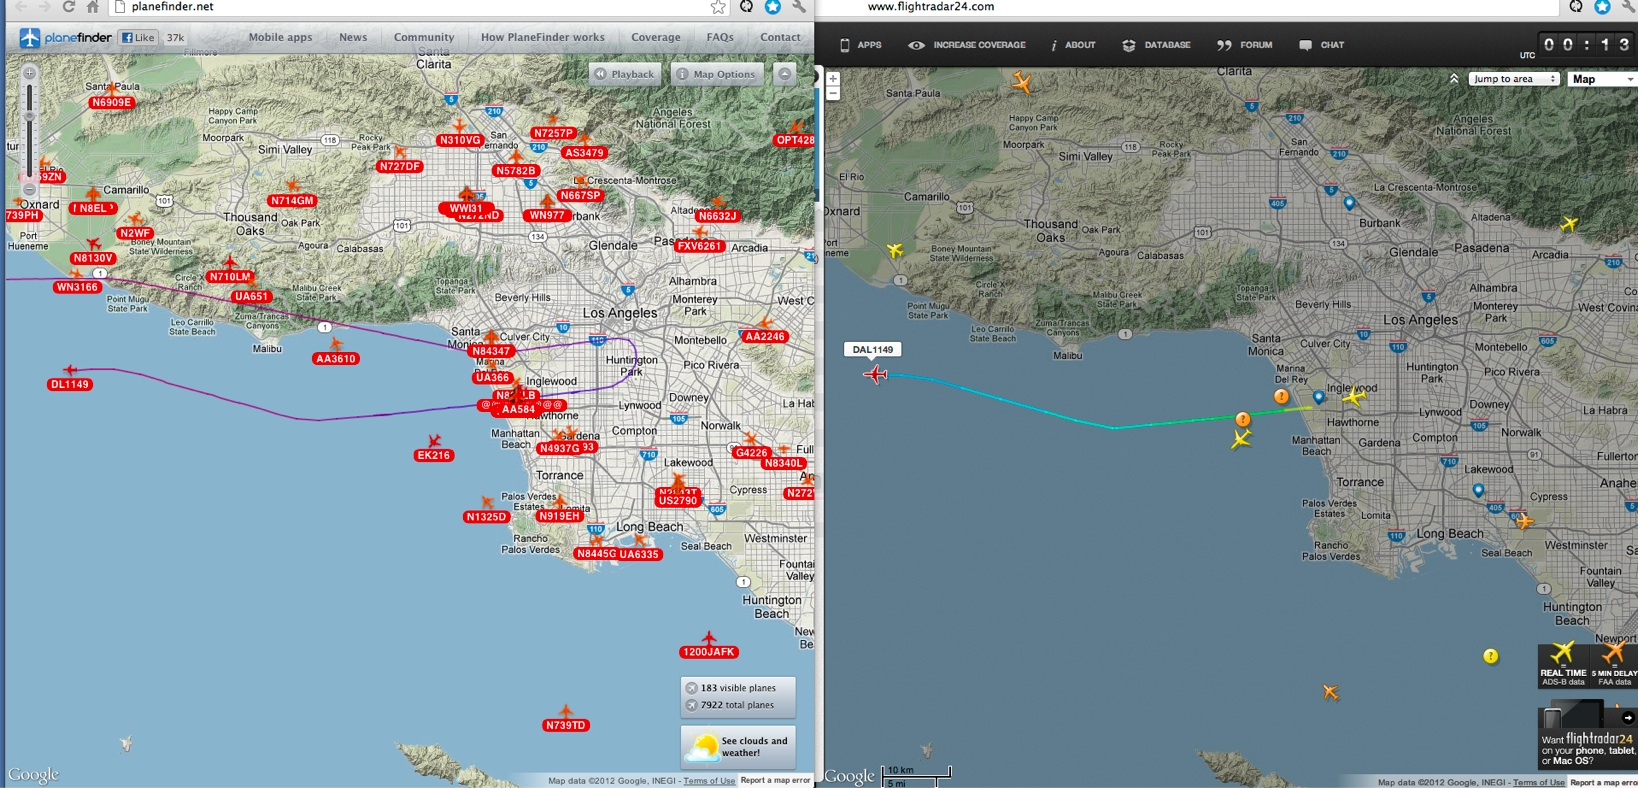 At least around los angeles flightradar24 com only displays about 1 in 10 planes where planefinder net shows a lot more